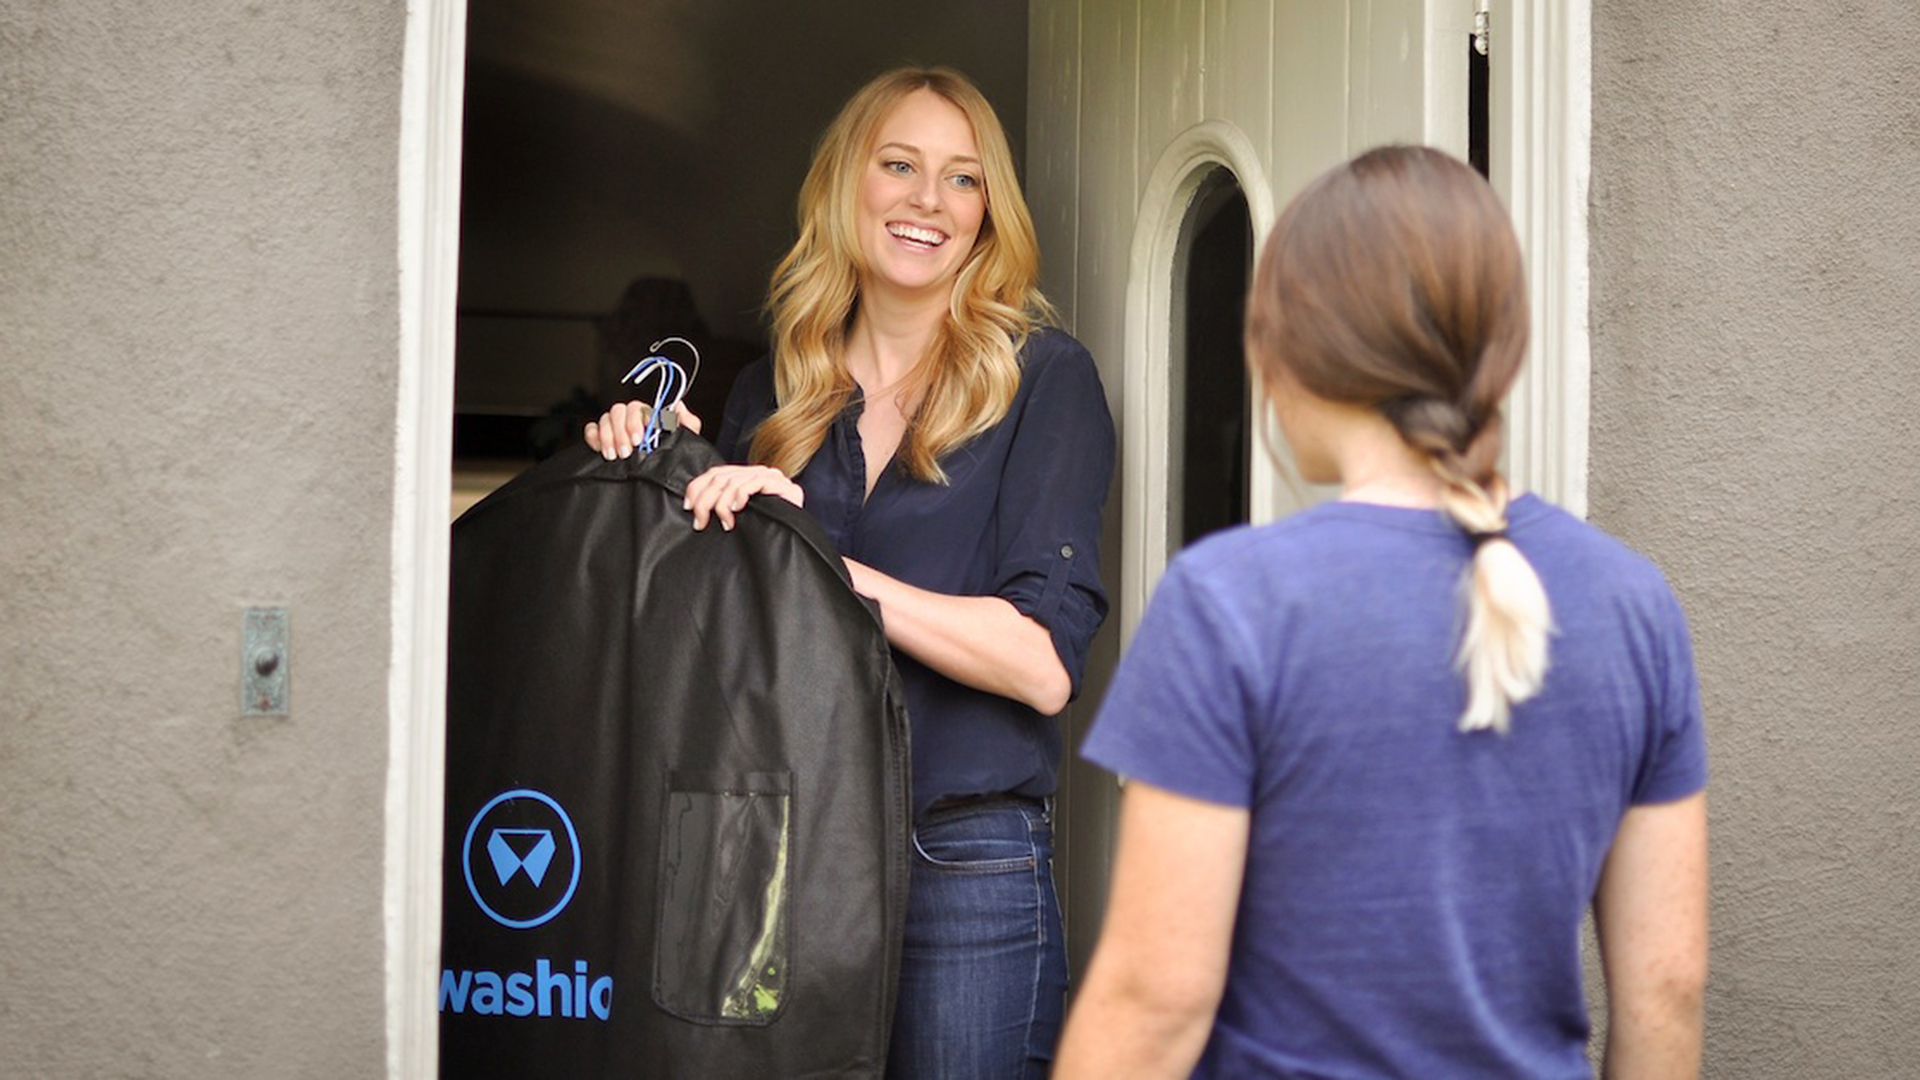 Washio, The On-Demand Laundry Startup, Washes Out